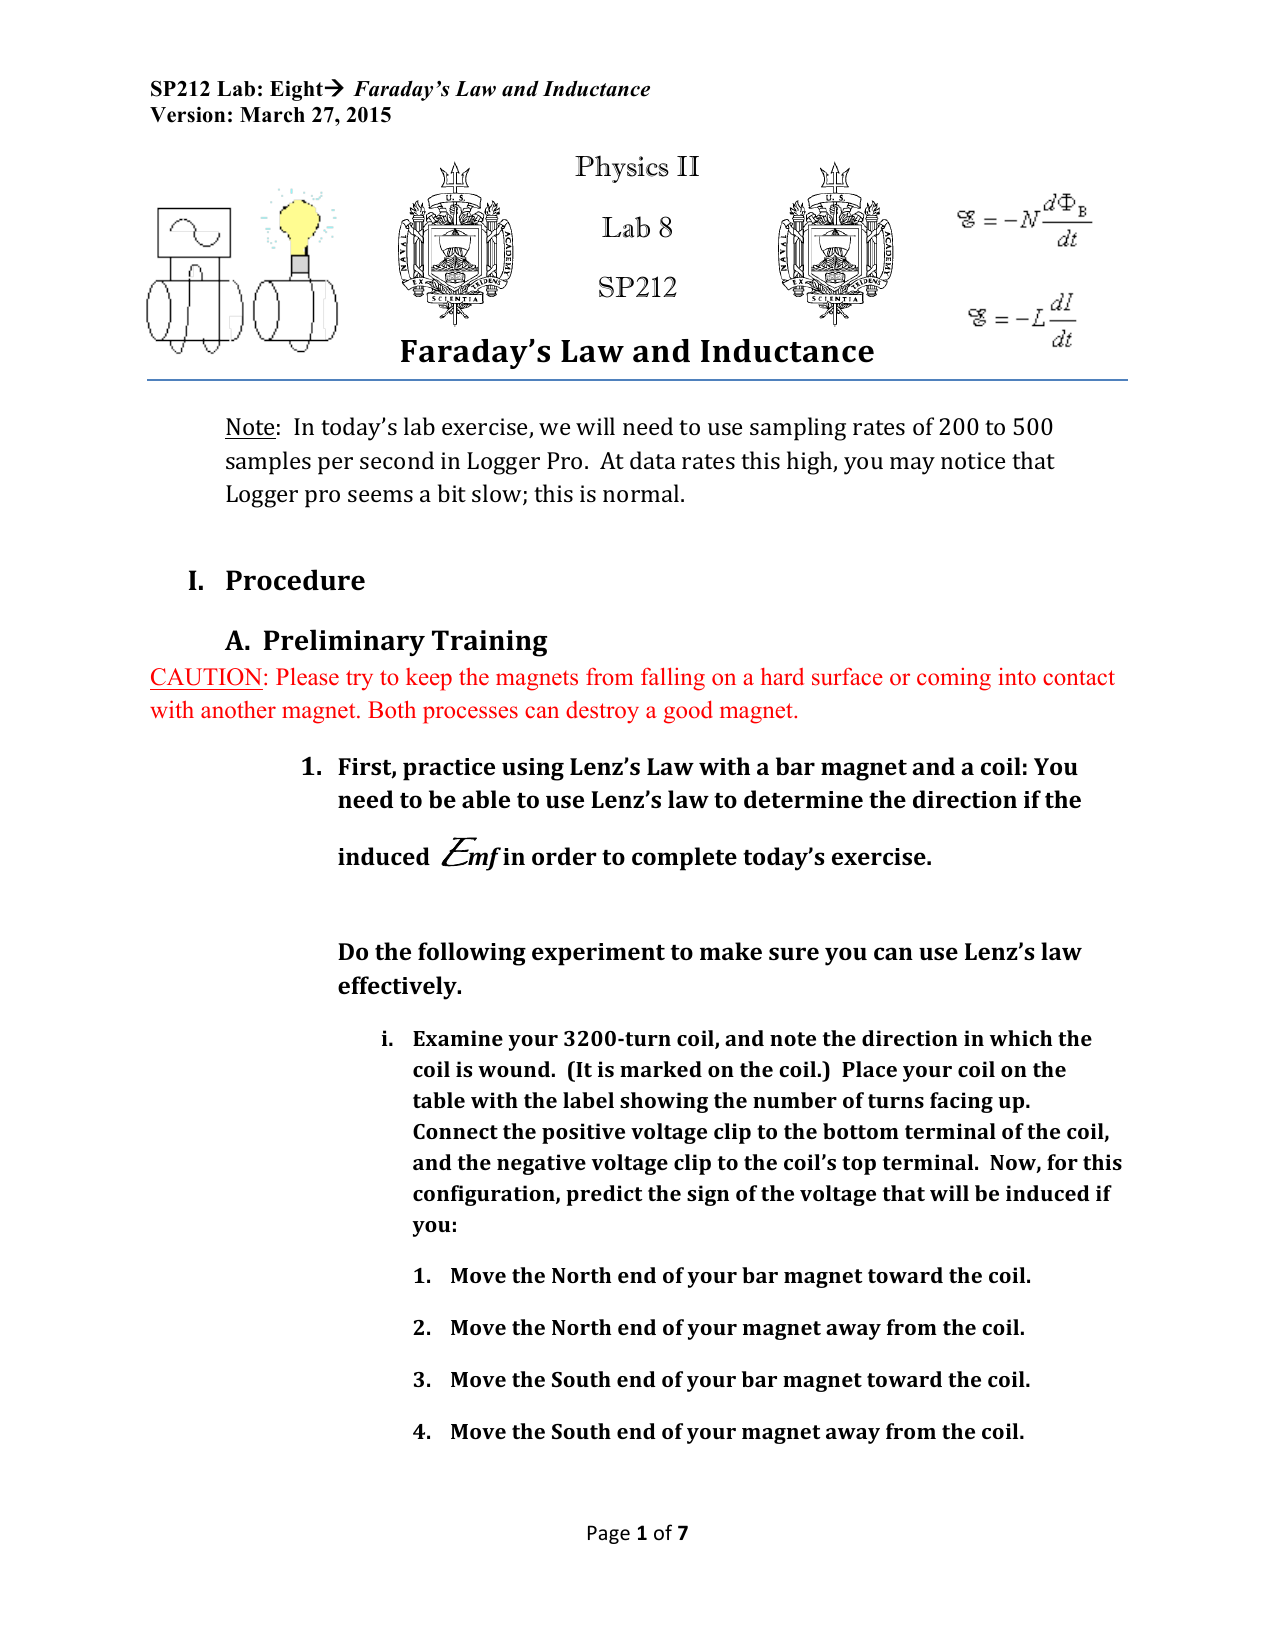 Faraday's Law and Inductance Physics II Lab 8